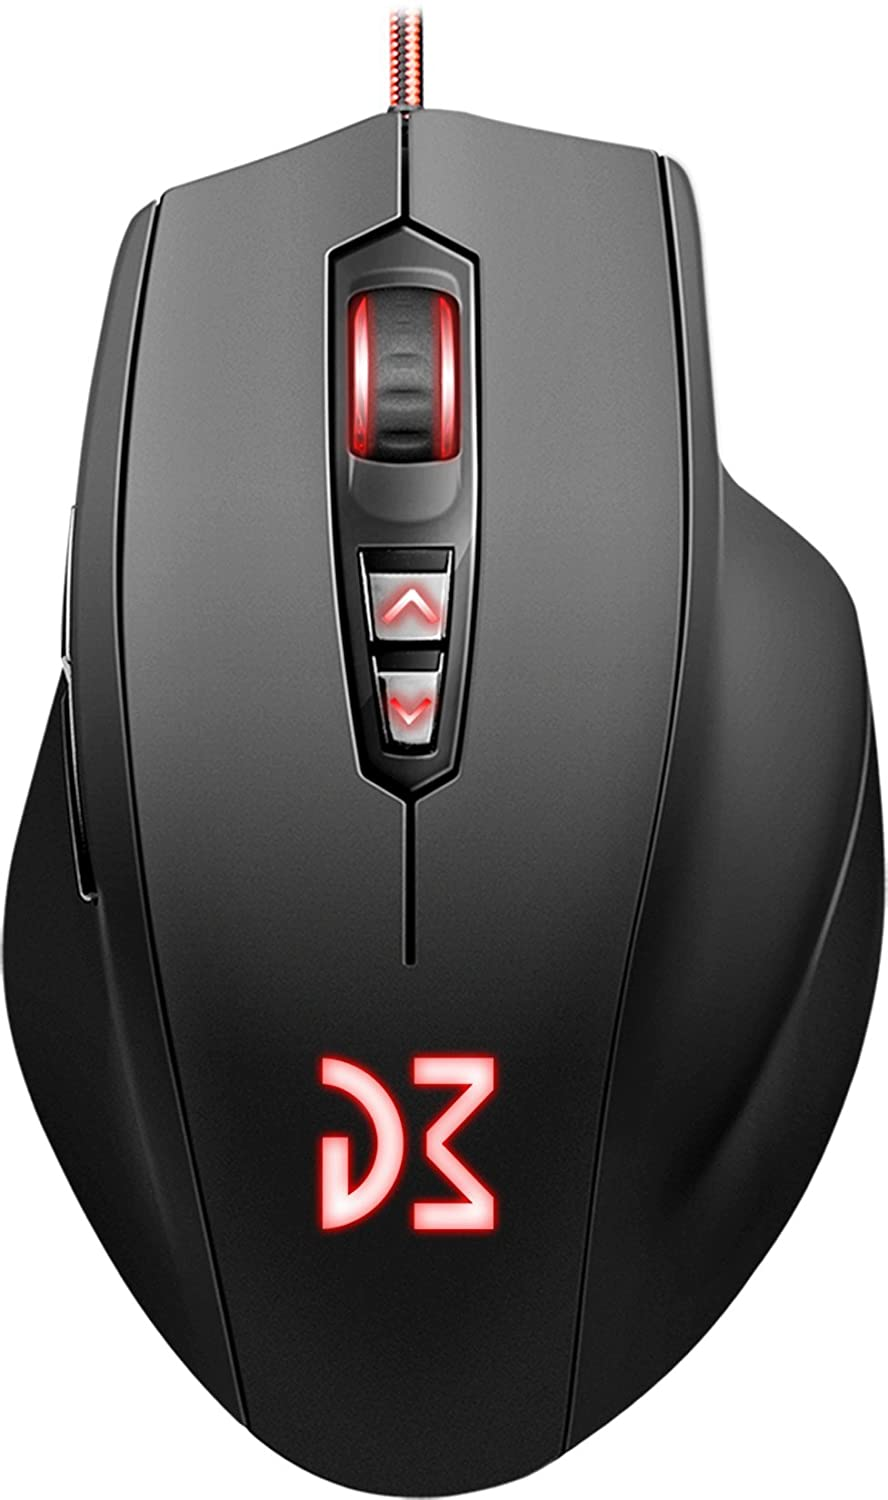 19 Best gaming mice for large hands as of 2019 - Slant